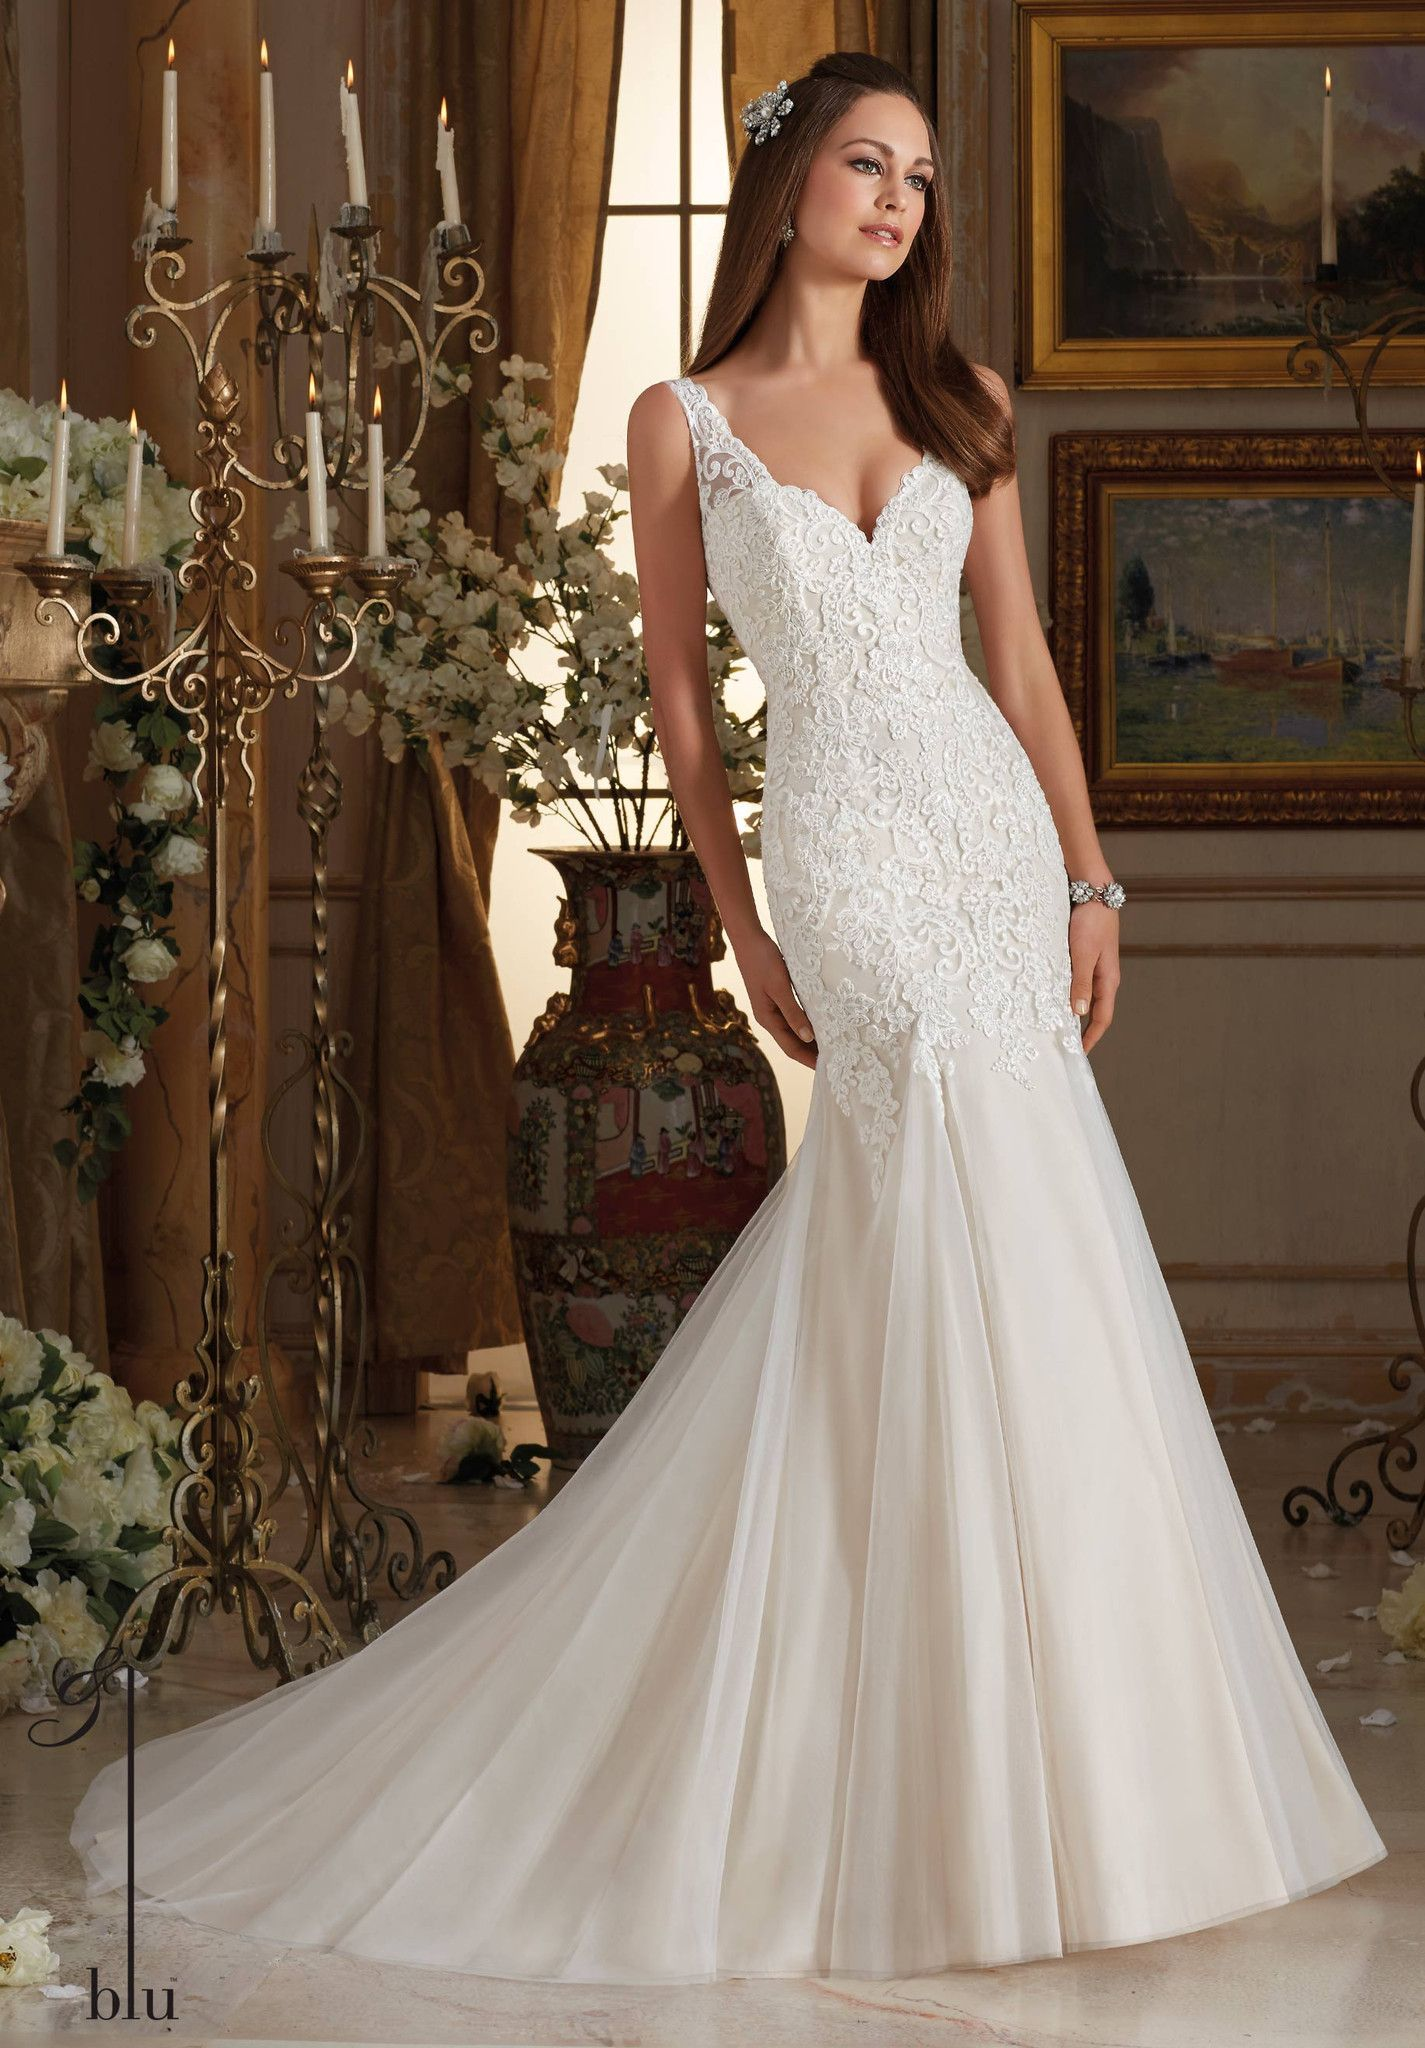 Blu - 5464 - All Dressed Up, Bridal Gown